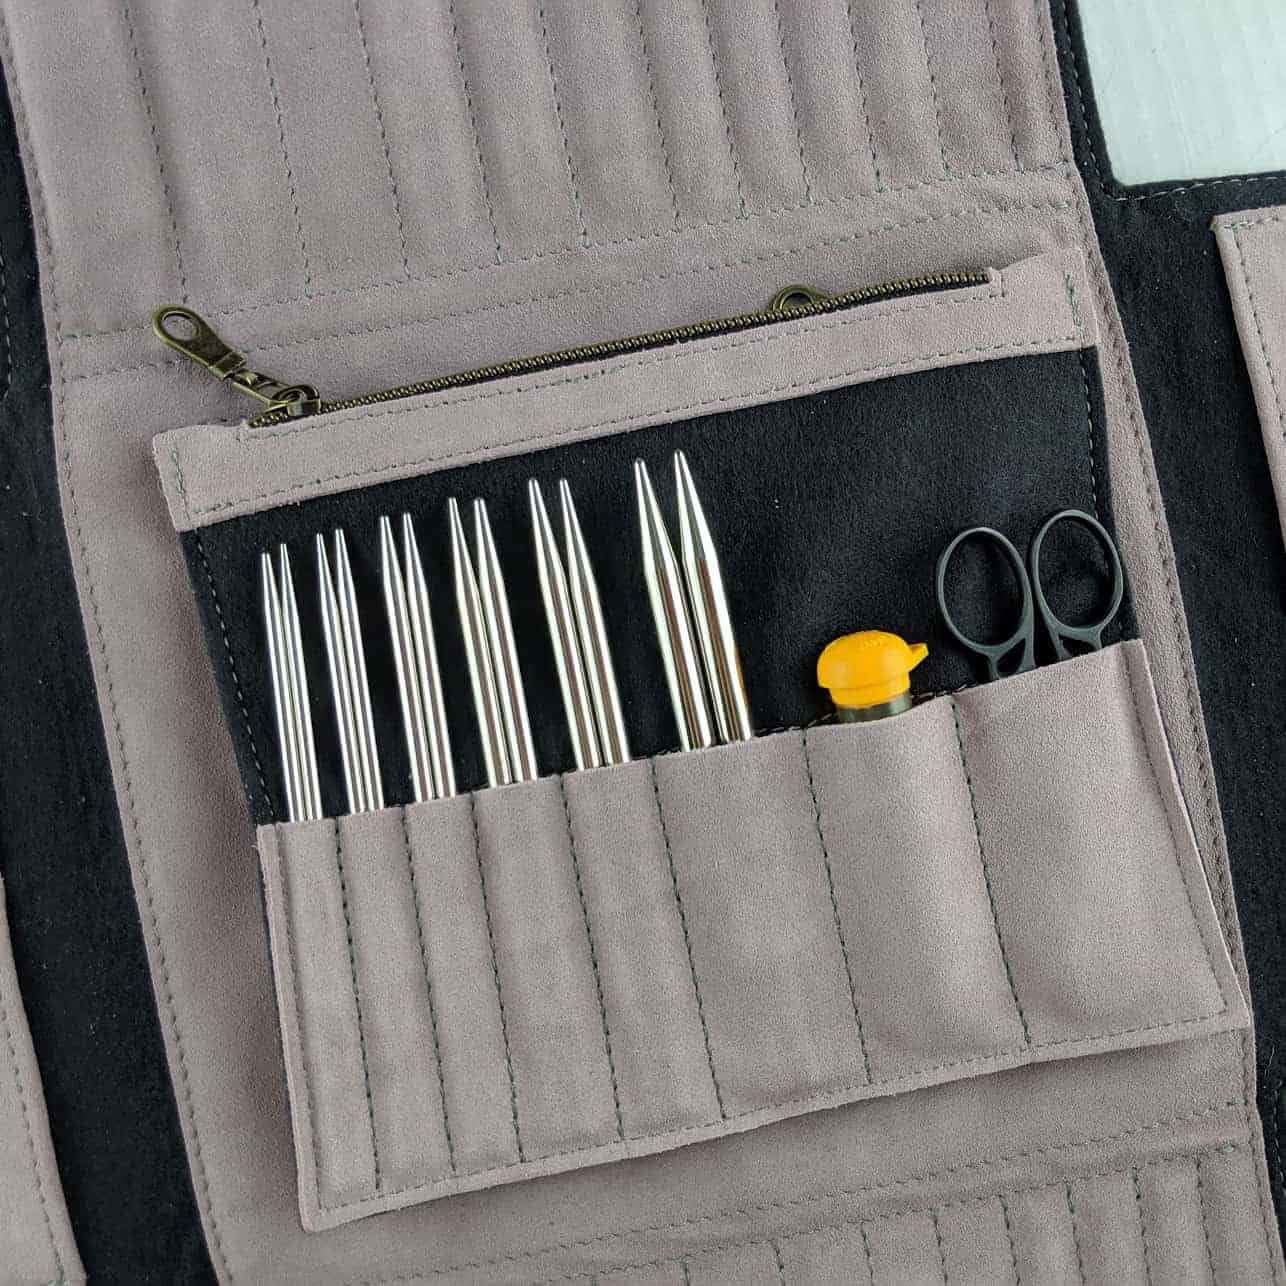 A gray and black case holding metal knitting needle tips.